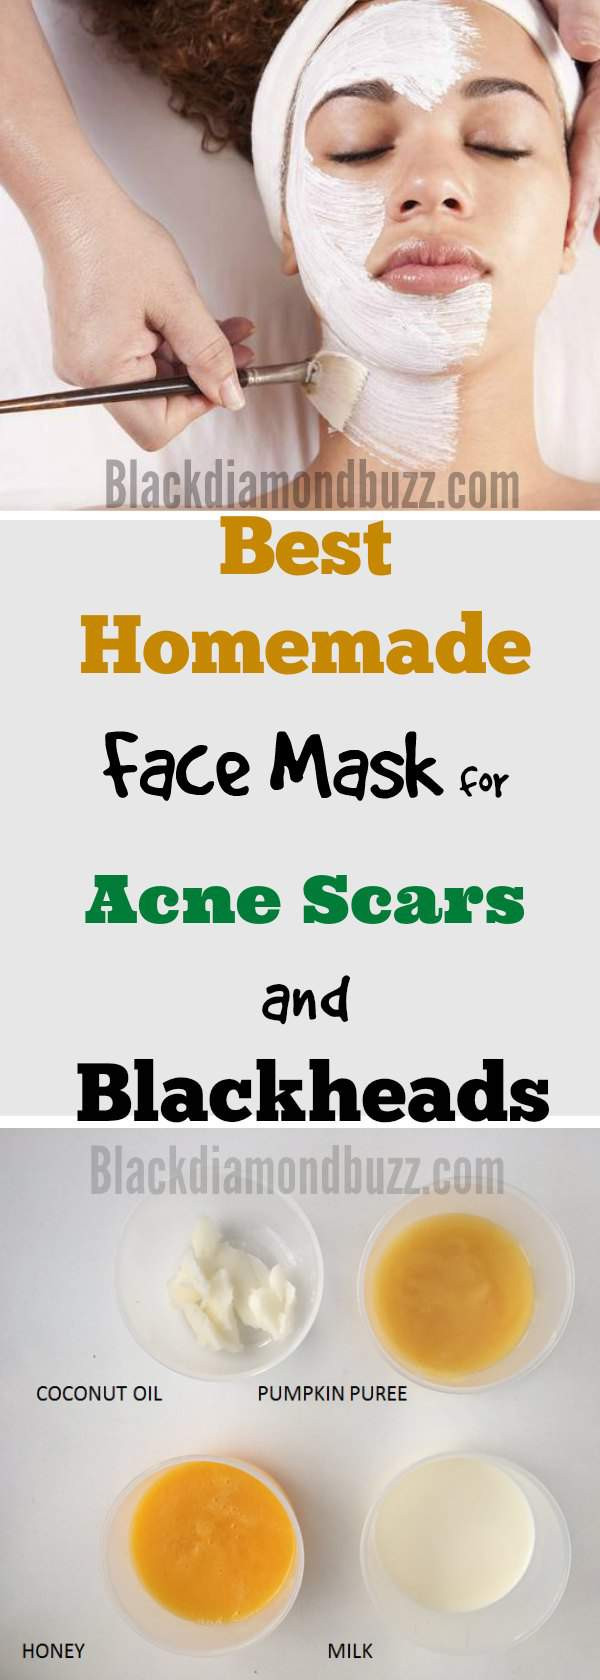 Acne Masks DIY  DIY Face Mask for Acne 7 Best Homemade Face Masks